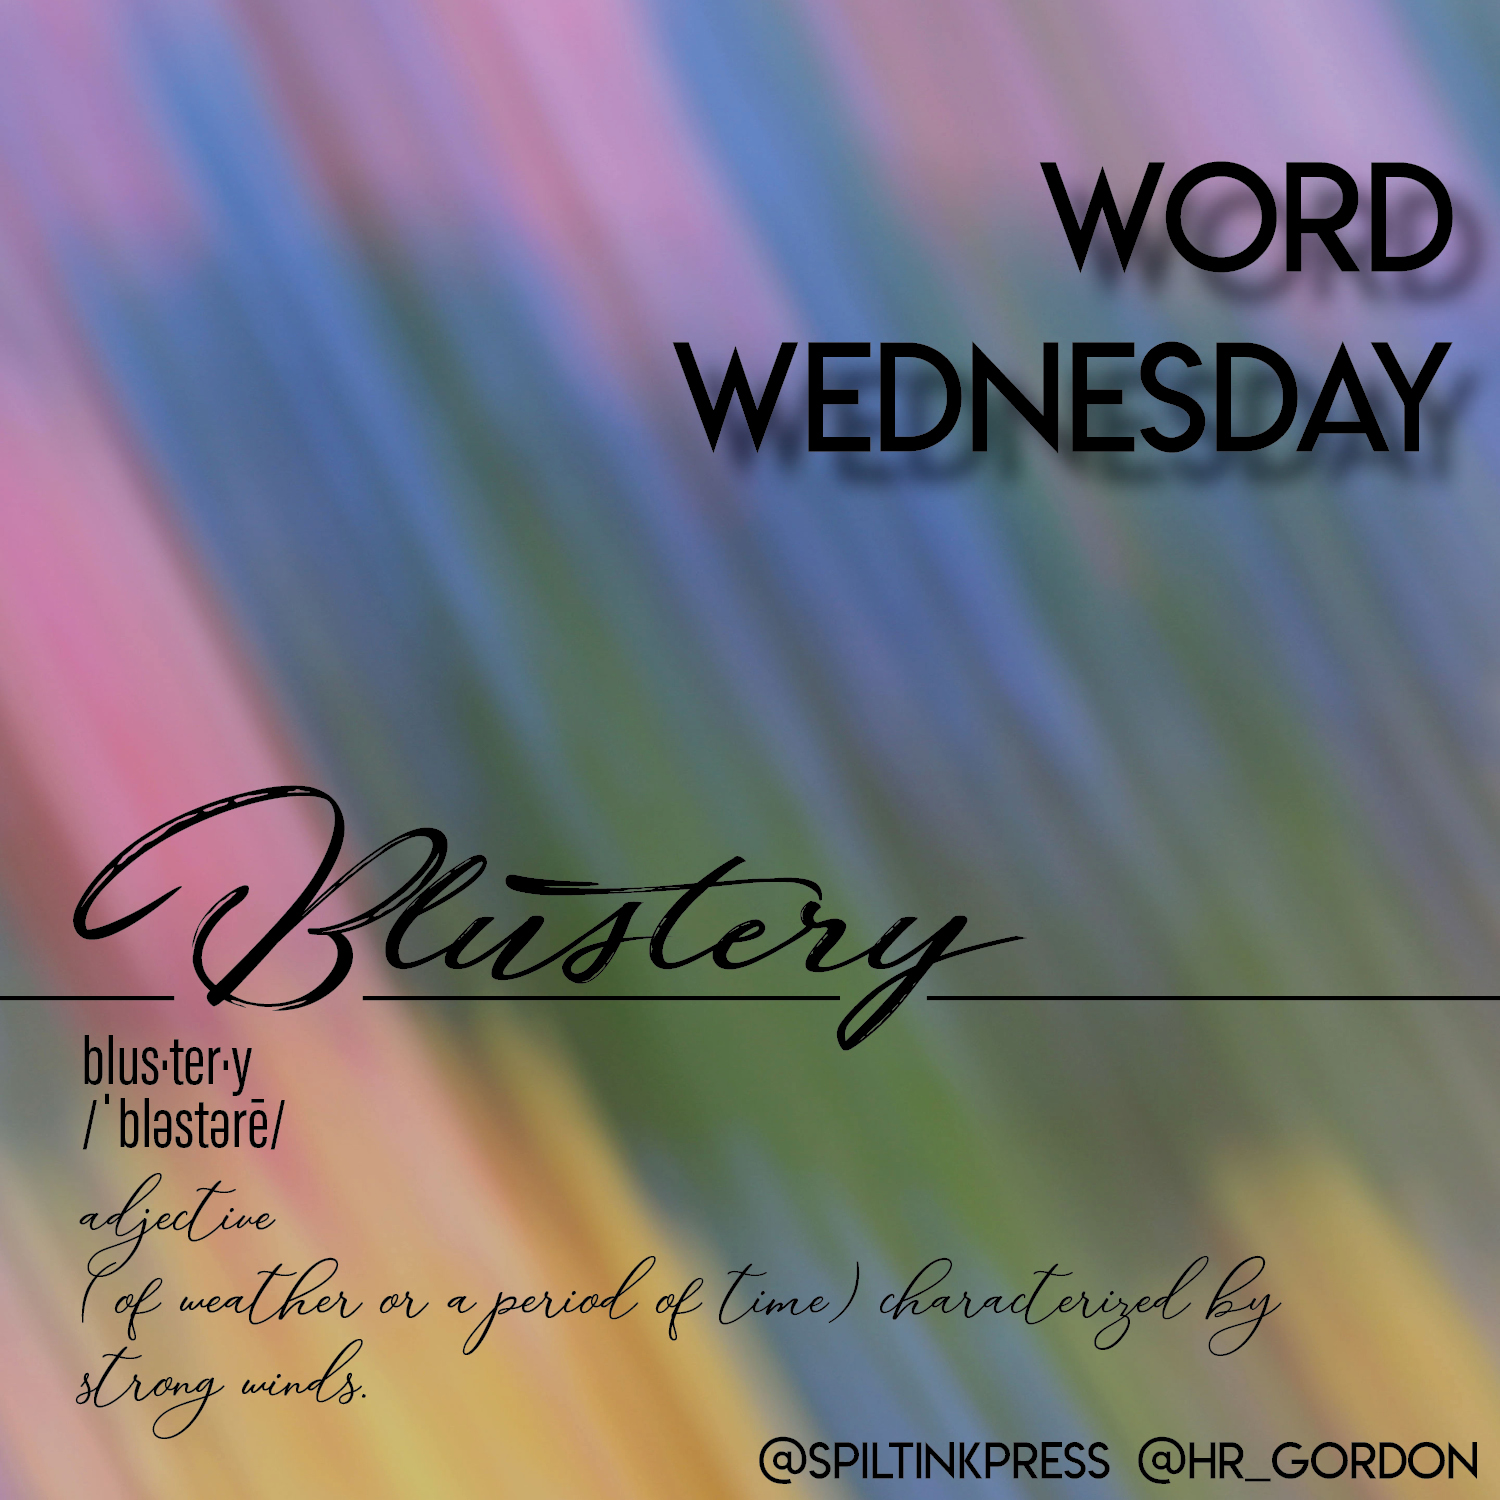 Word Wednesday: Blustery, Sitting in Spilt Ink